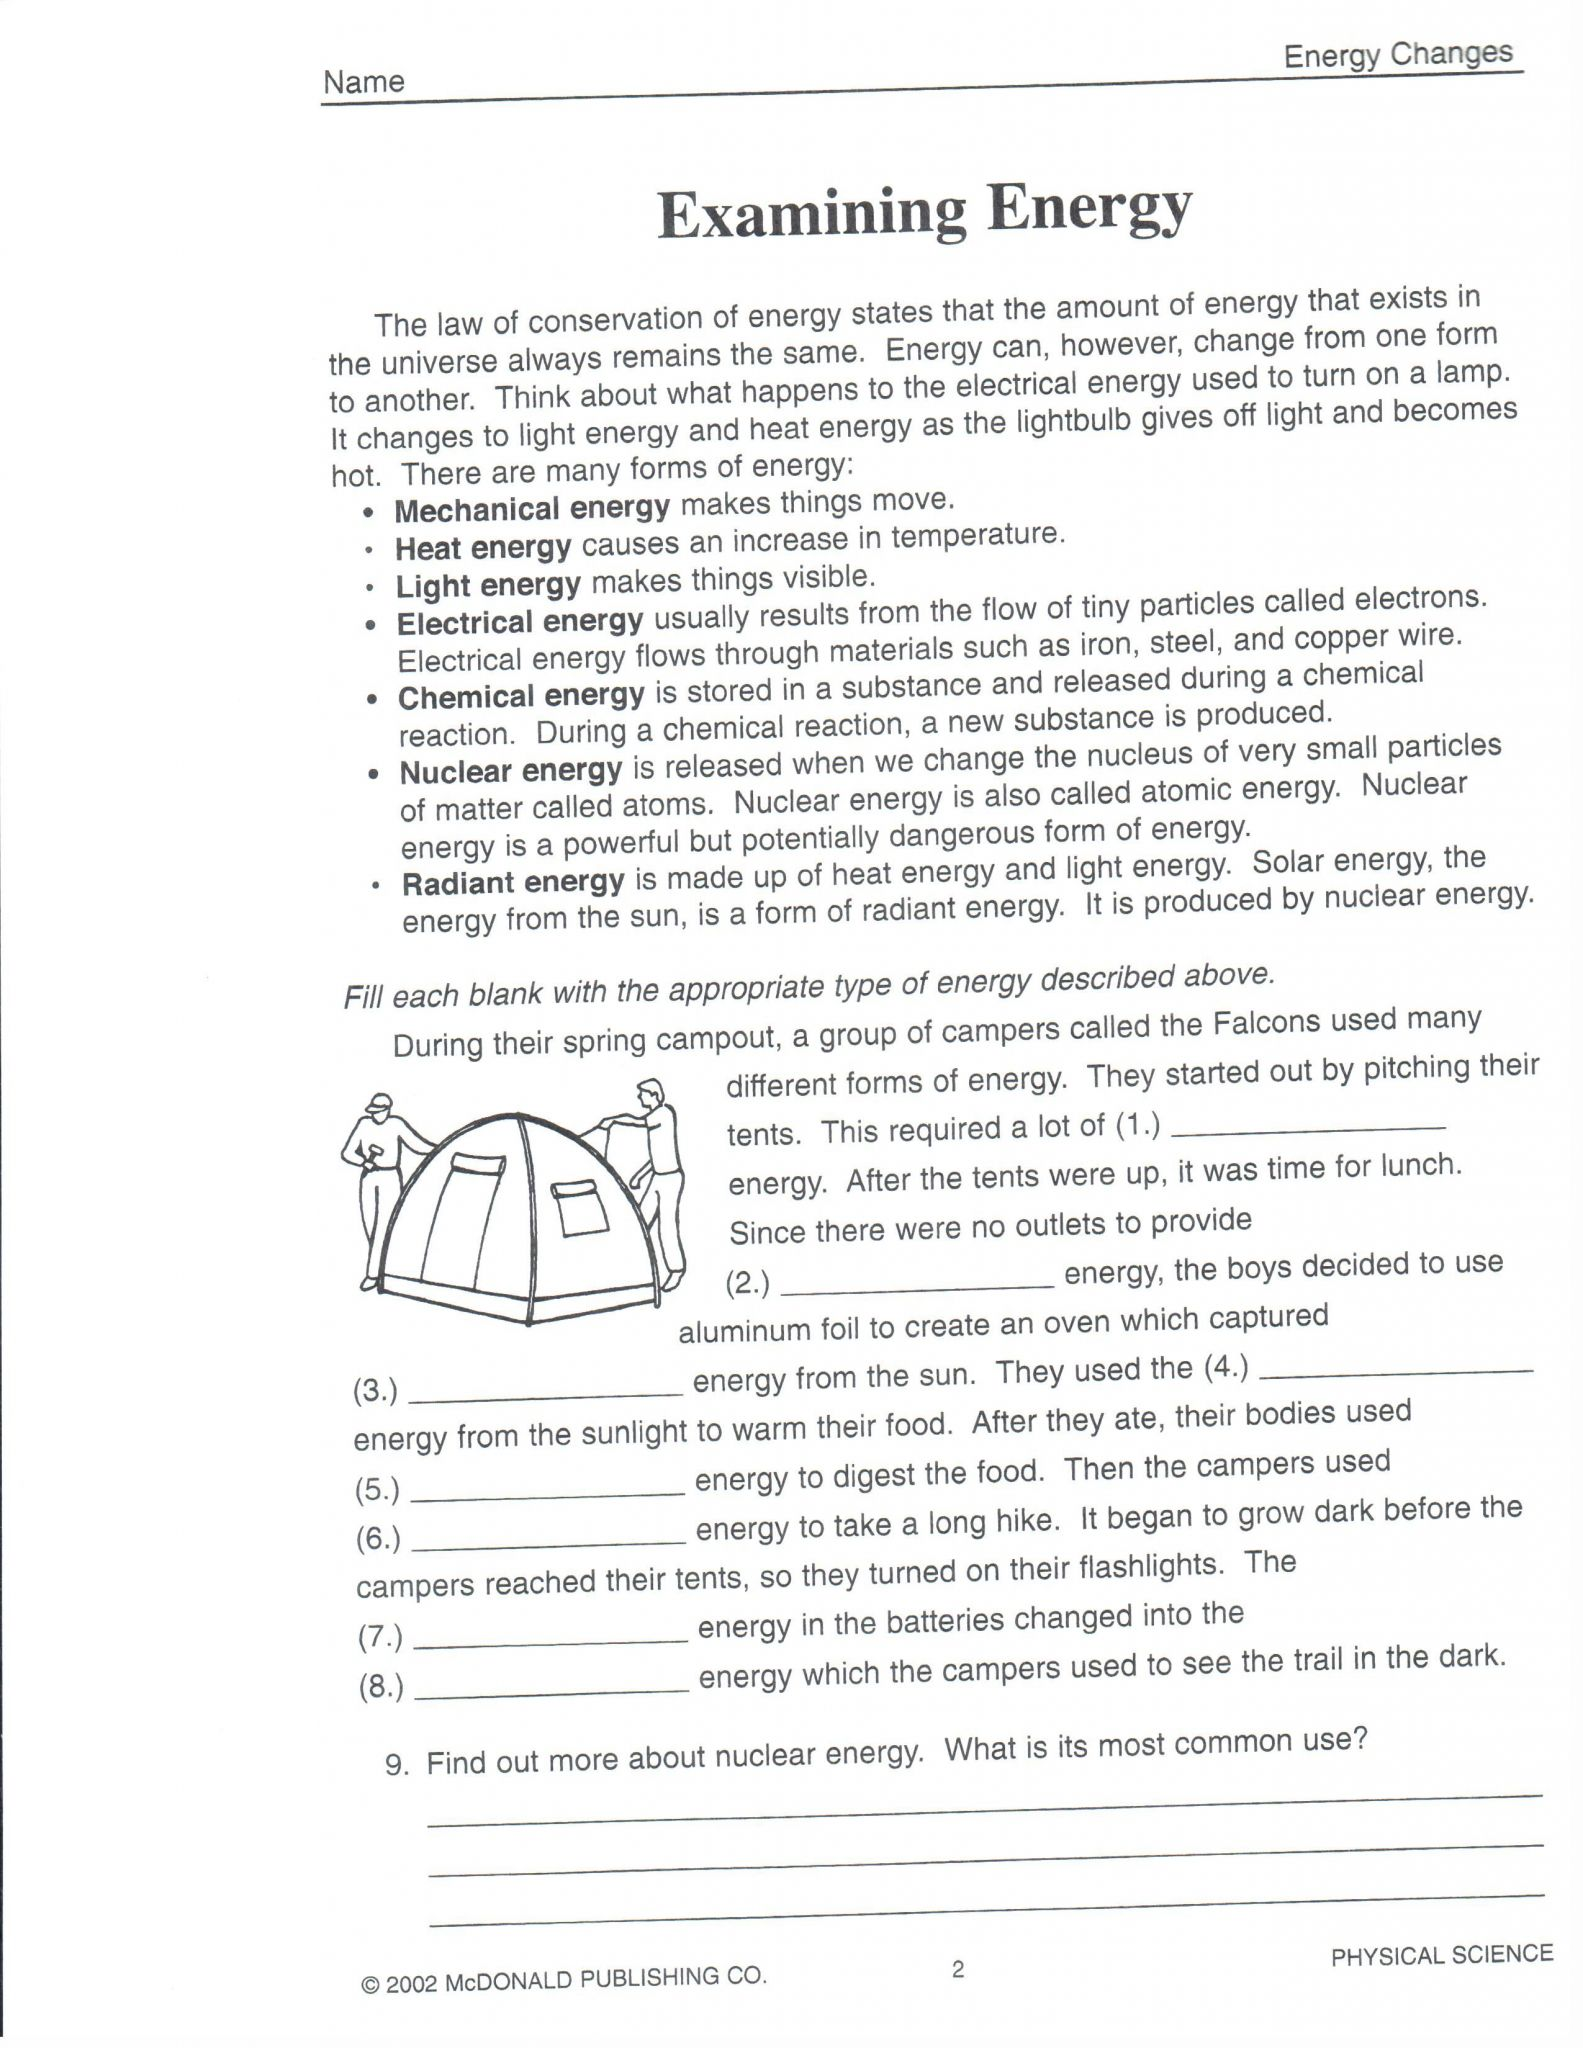 Energy Diagram Worksheet Answer